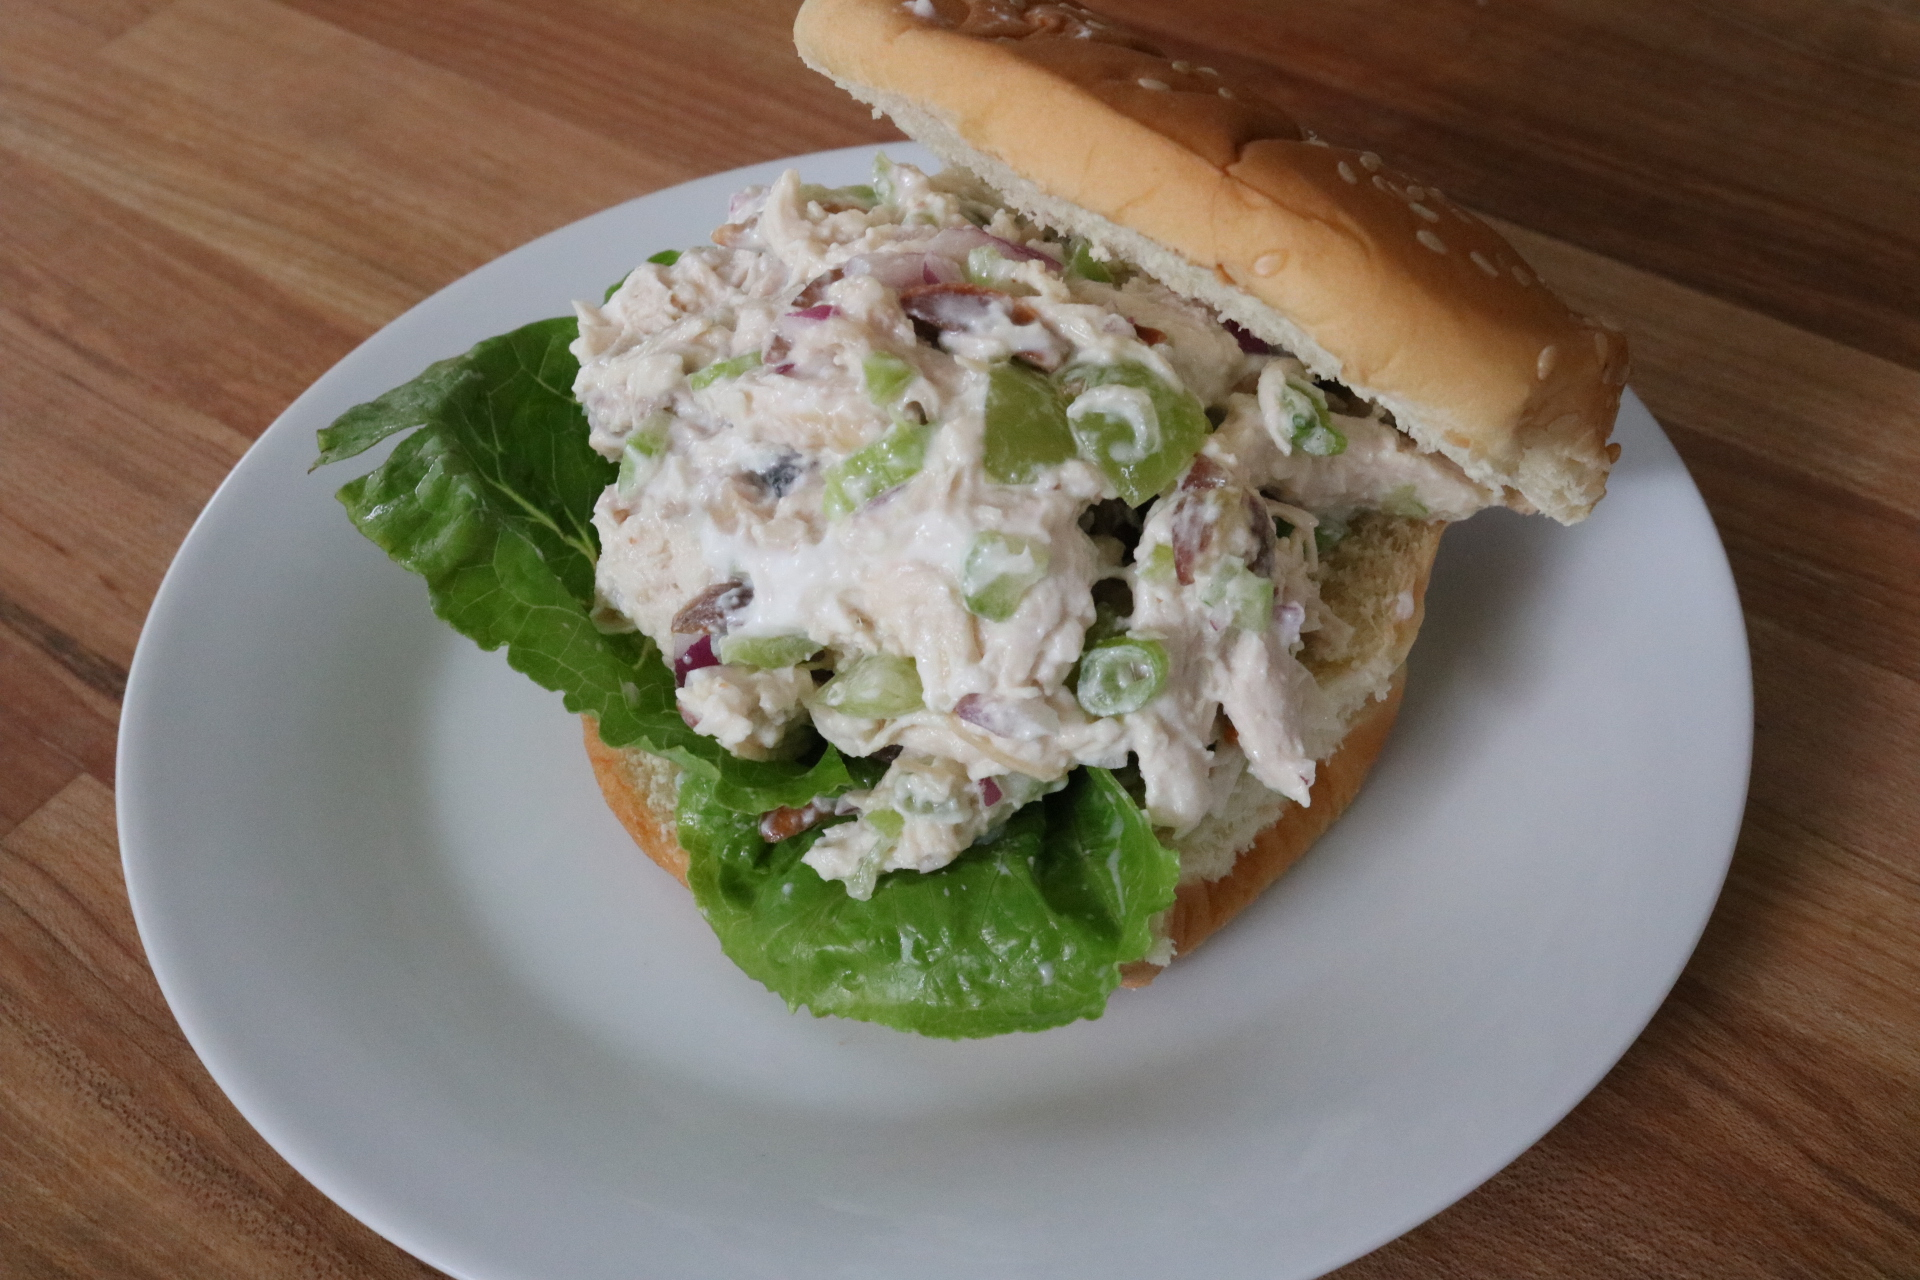 chicken salad 4.JPG